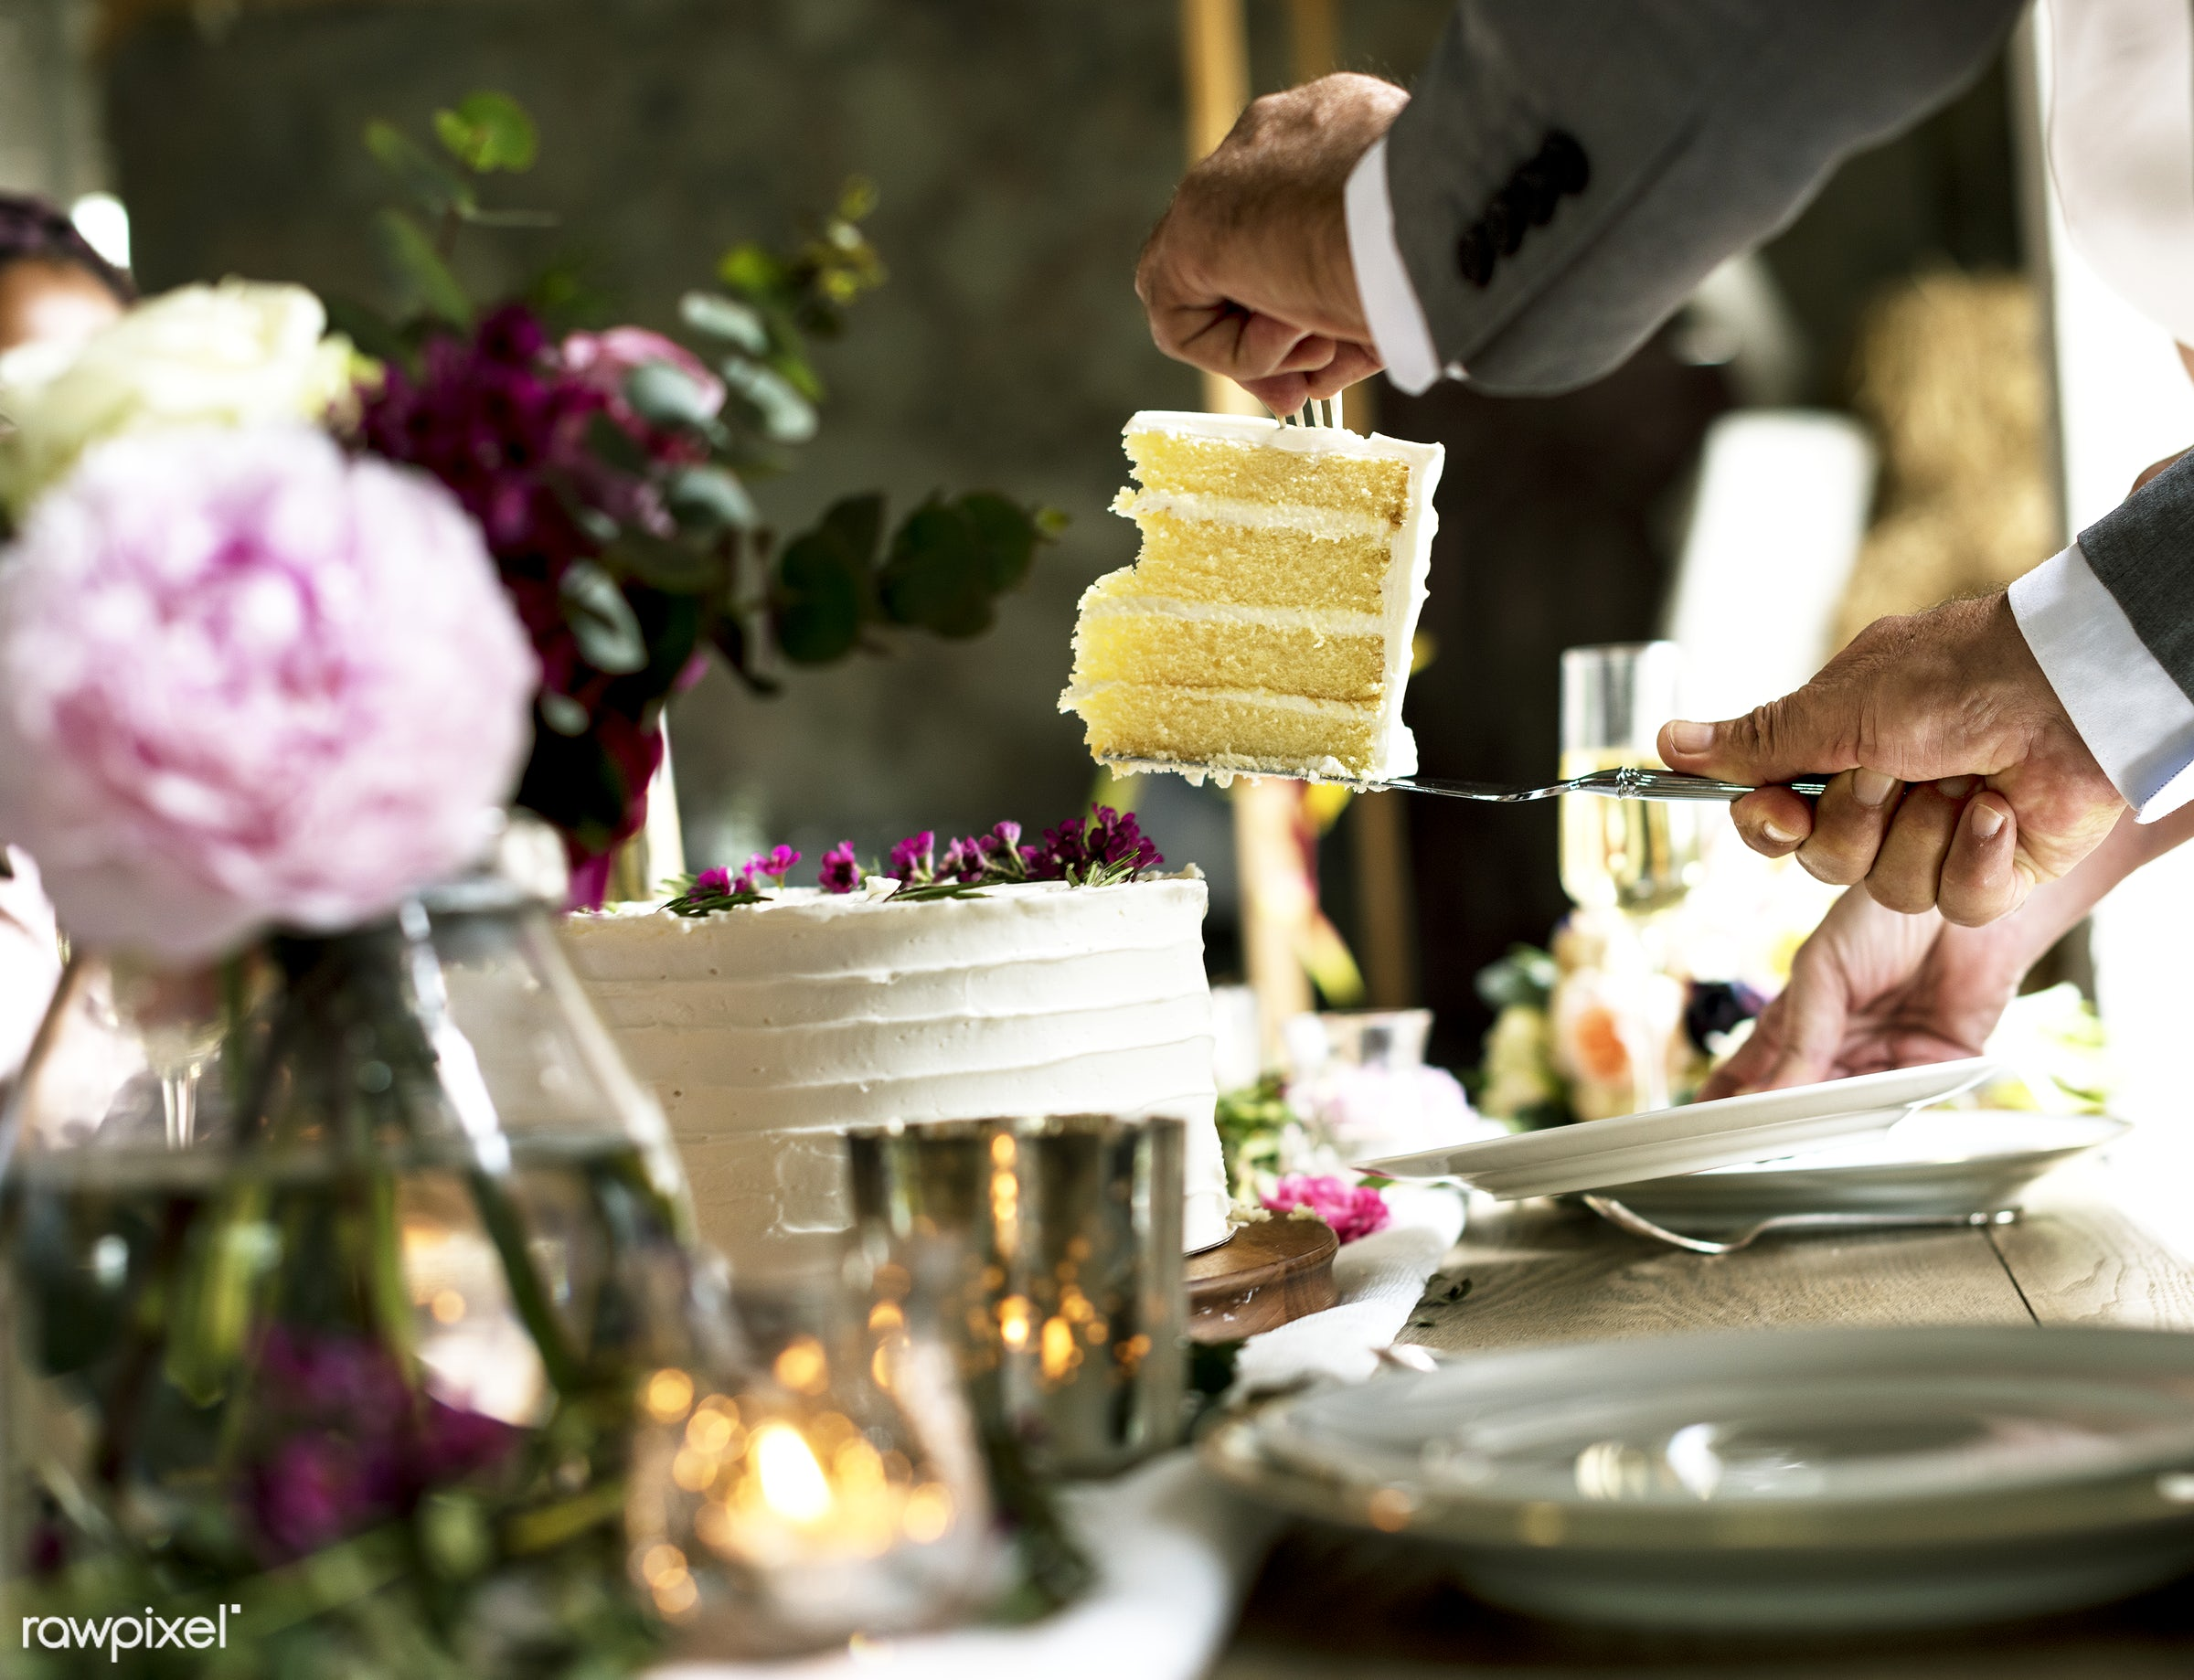 Hands getting a slice of a c - slice, cake, food, sweet, dessert, flower, plate, closeup, hands, eating, pastry, party,...